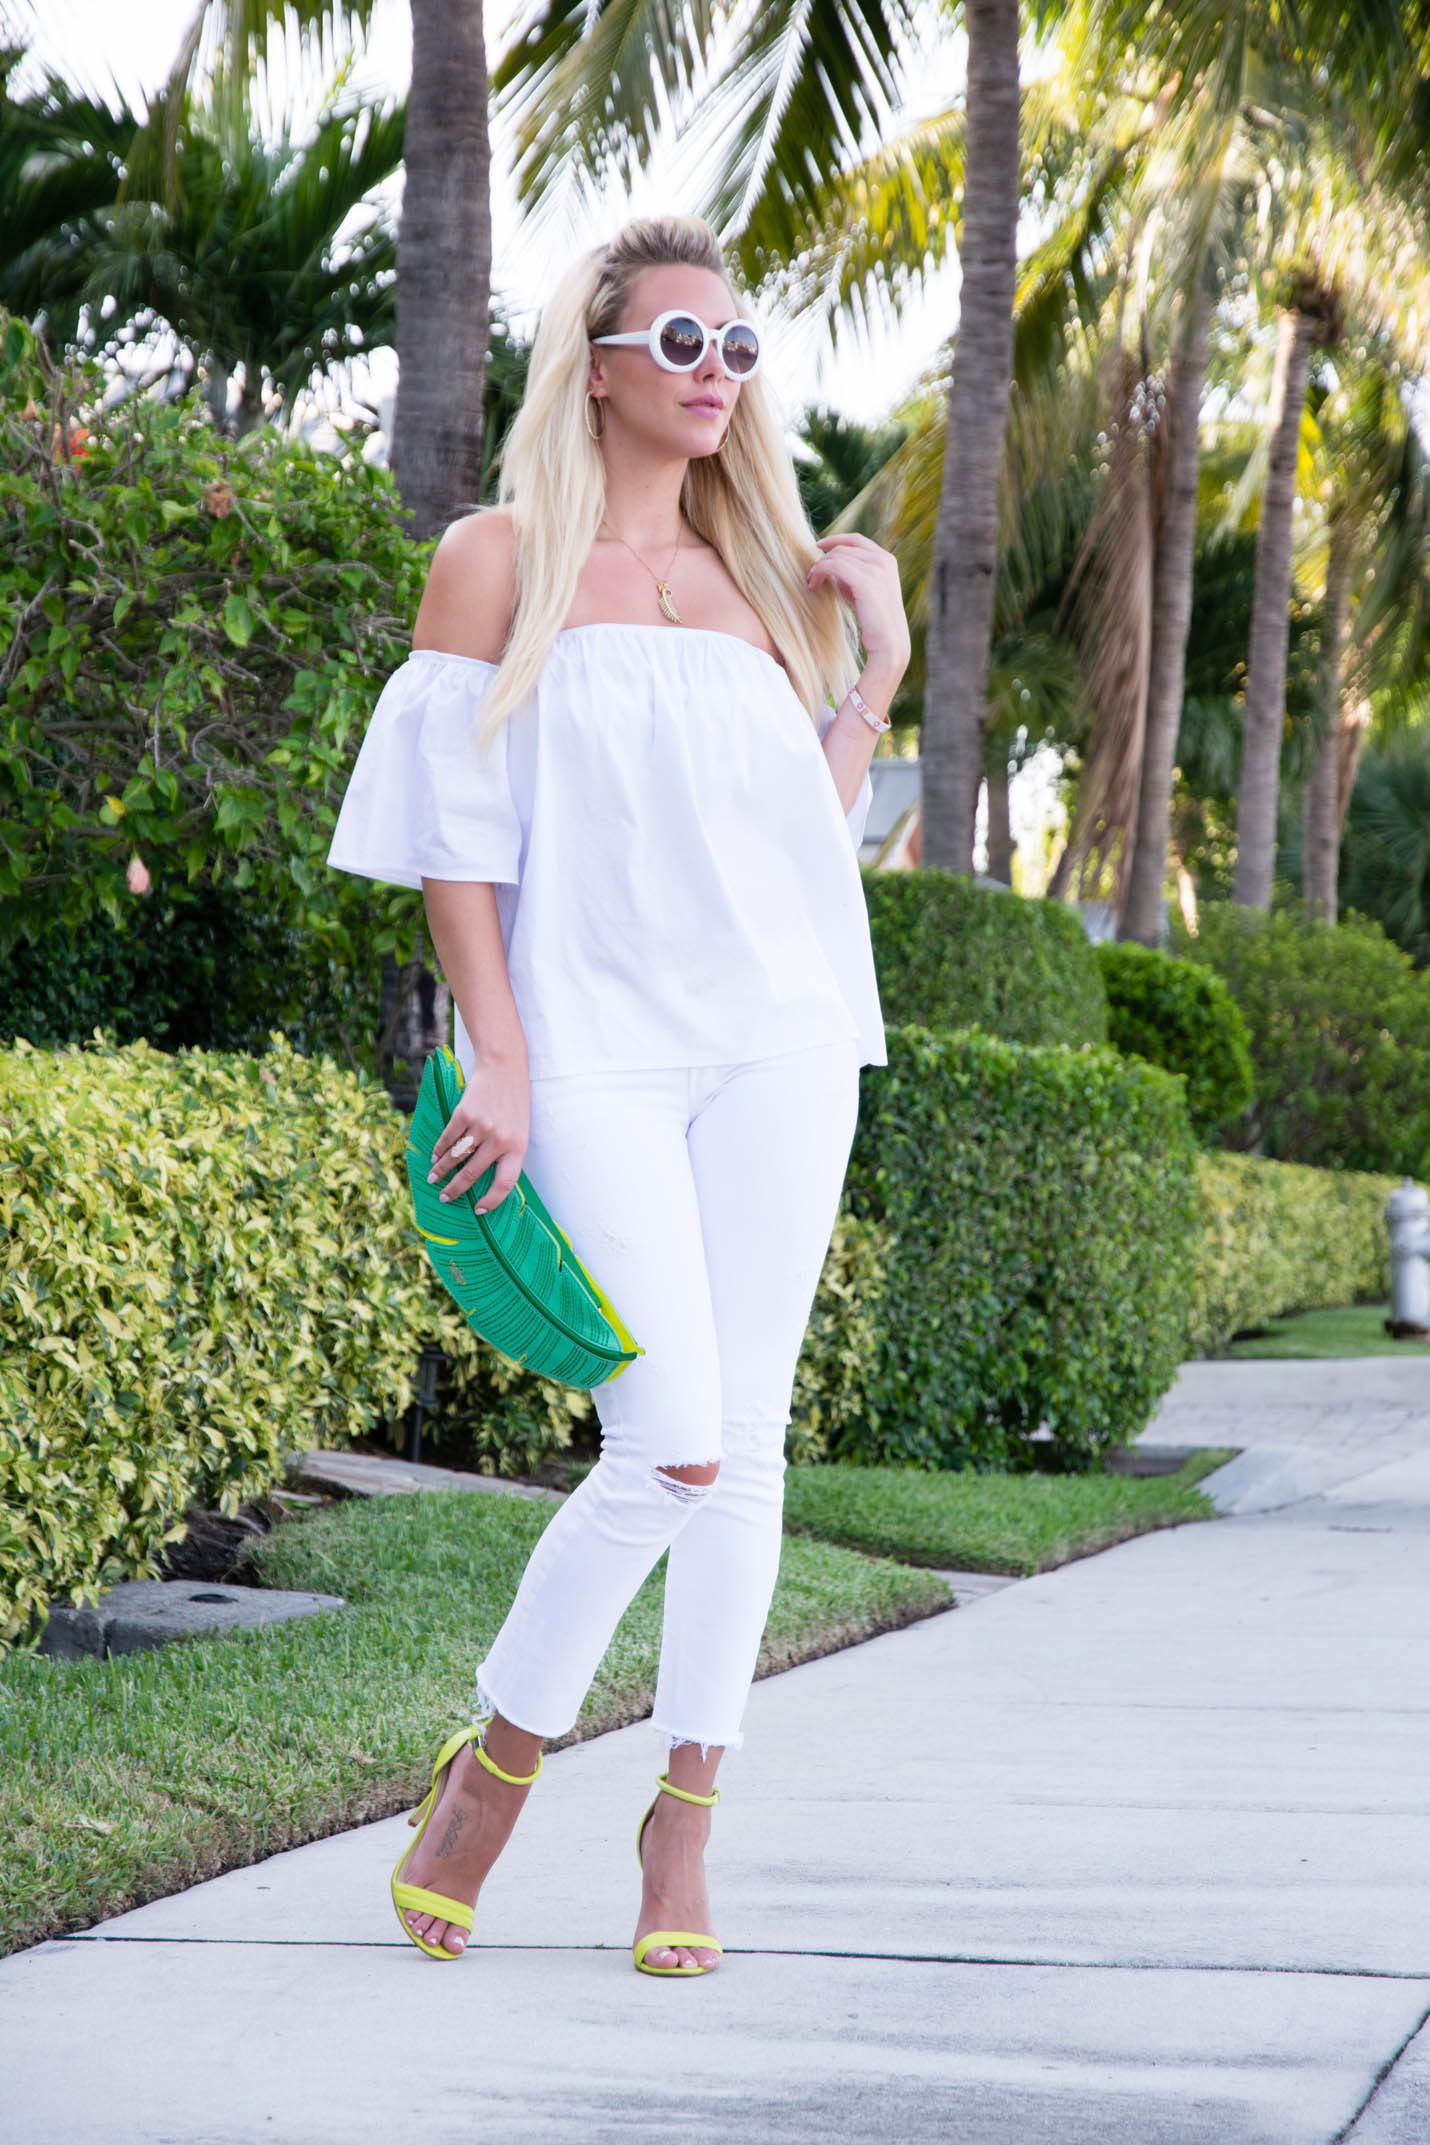 White and green outfit